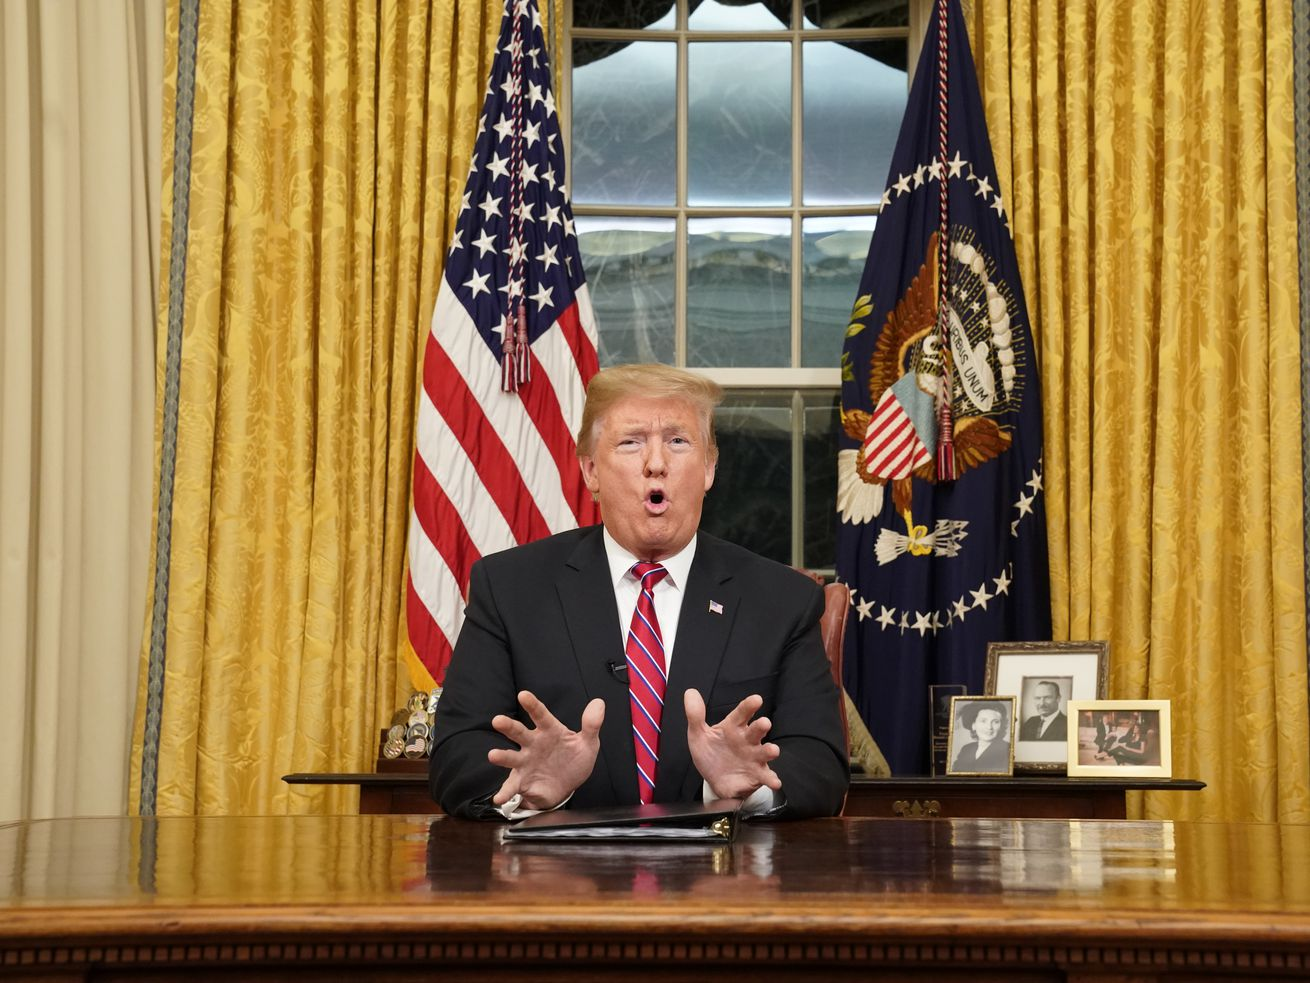 Trump gives his Oval Office address on Tuesday, January 8.